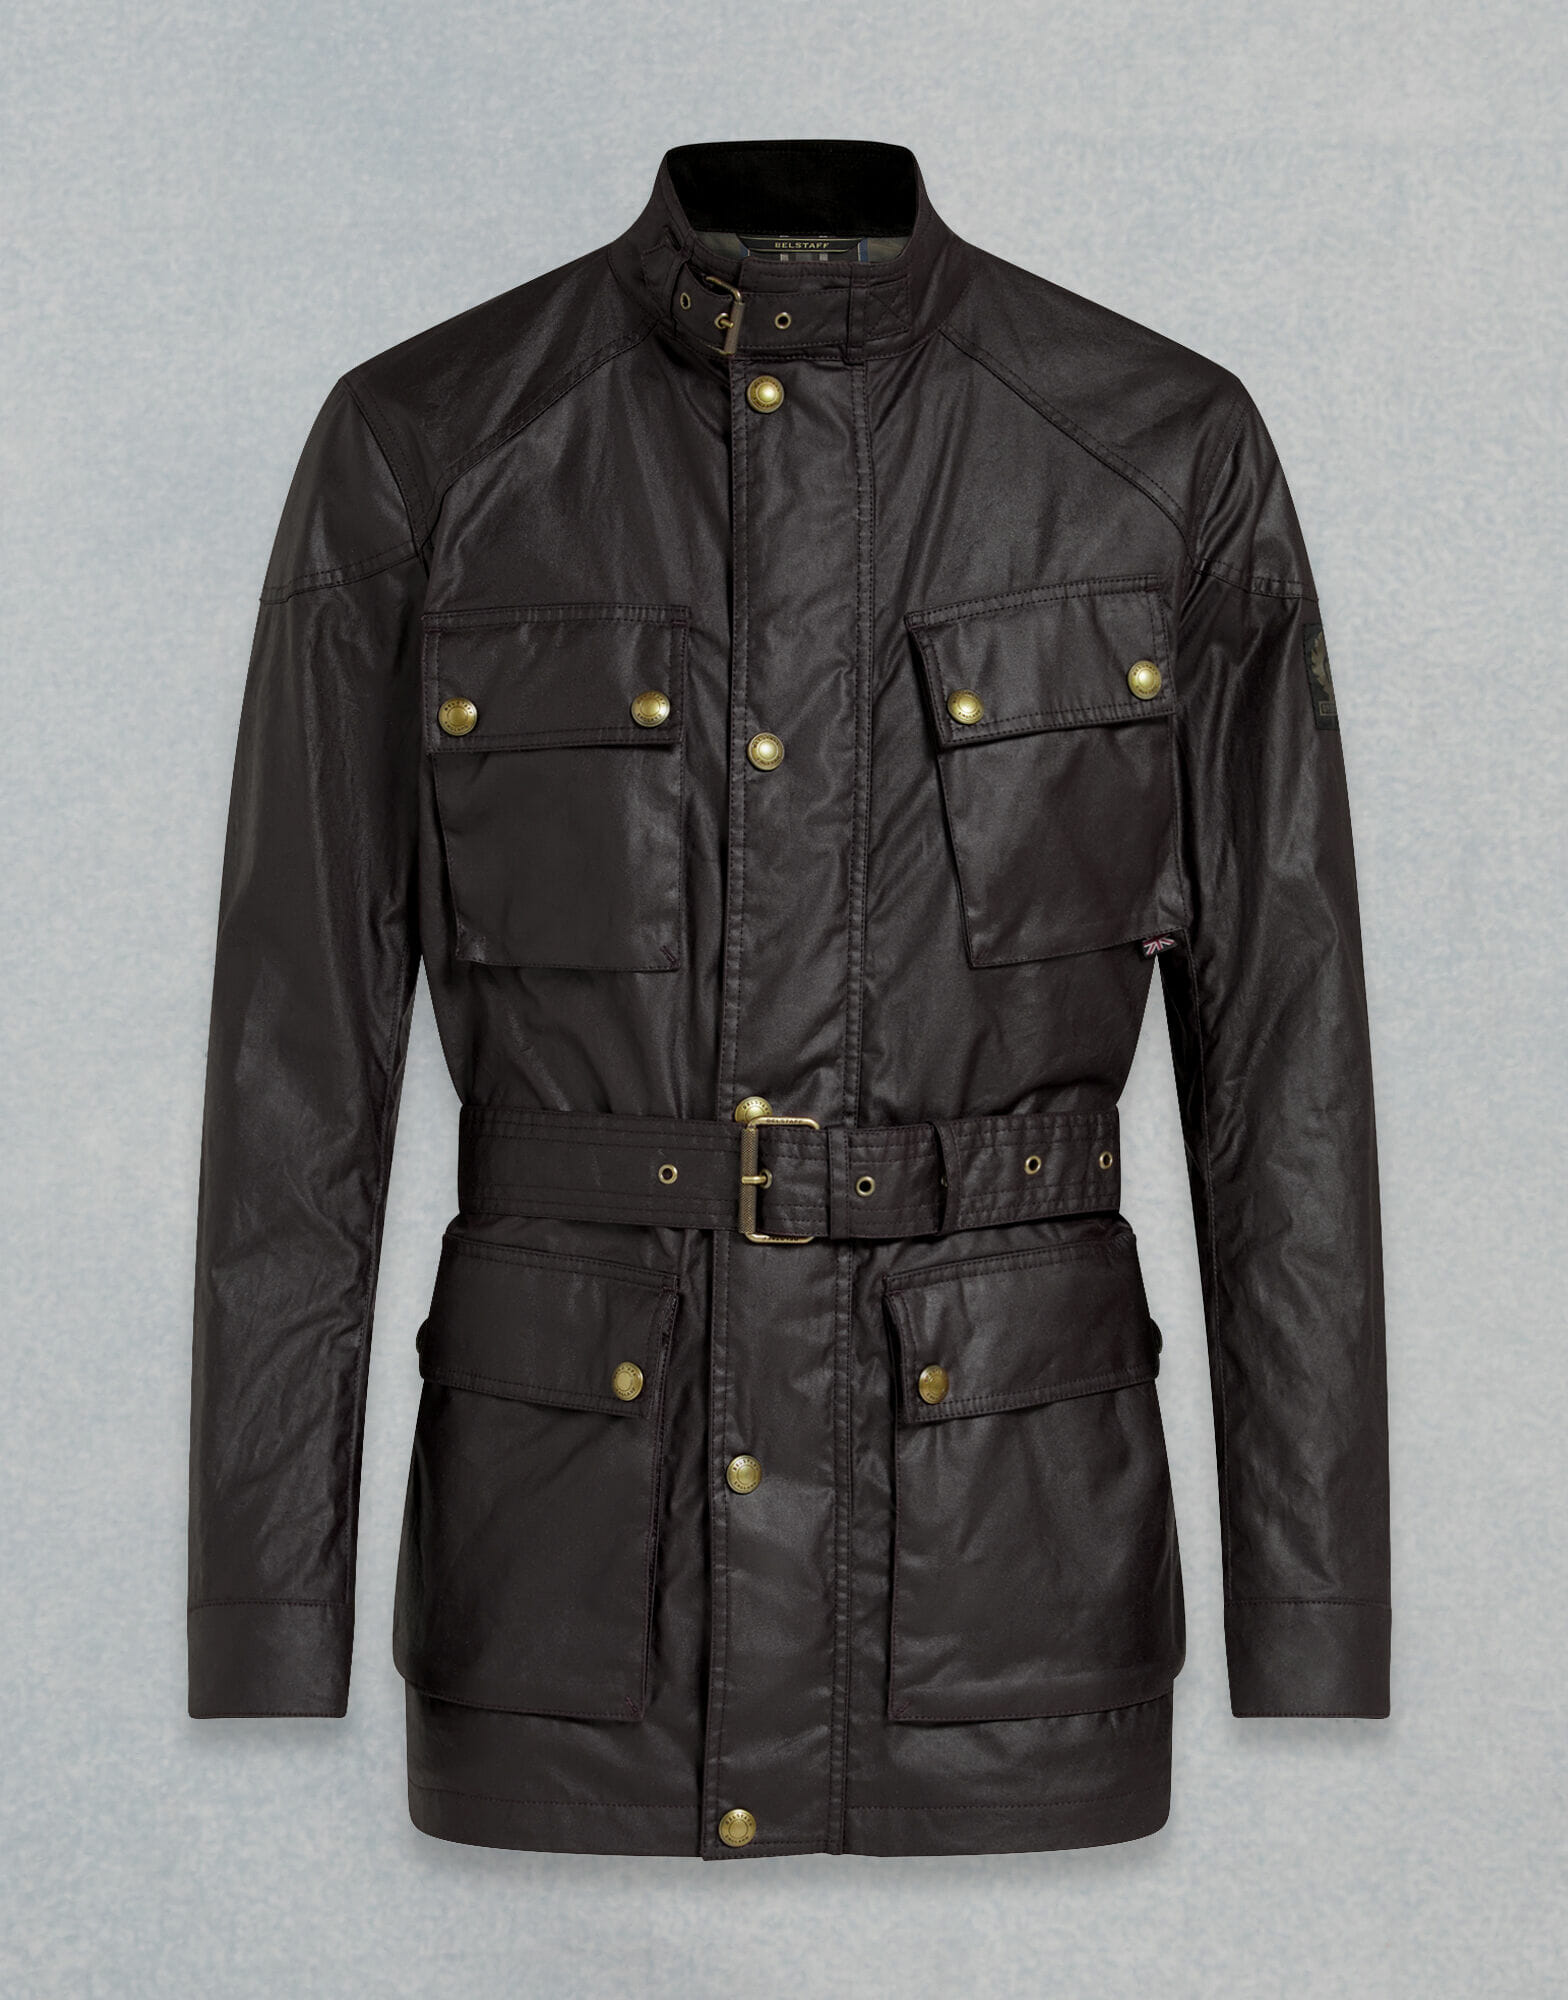 Belstaff Trialmaster Jacket in Waxed Black